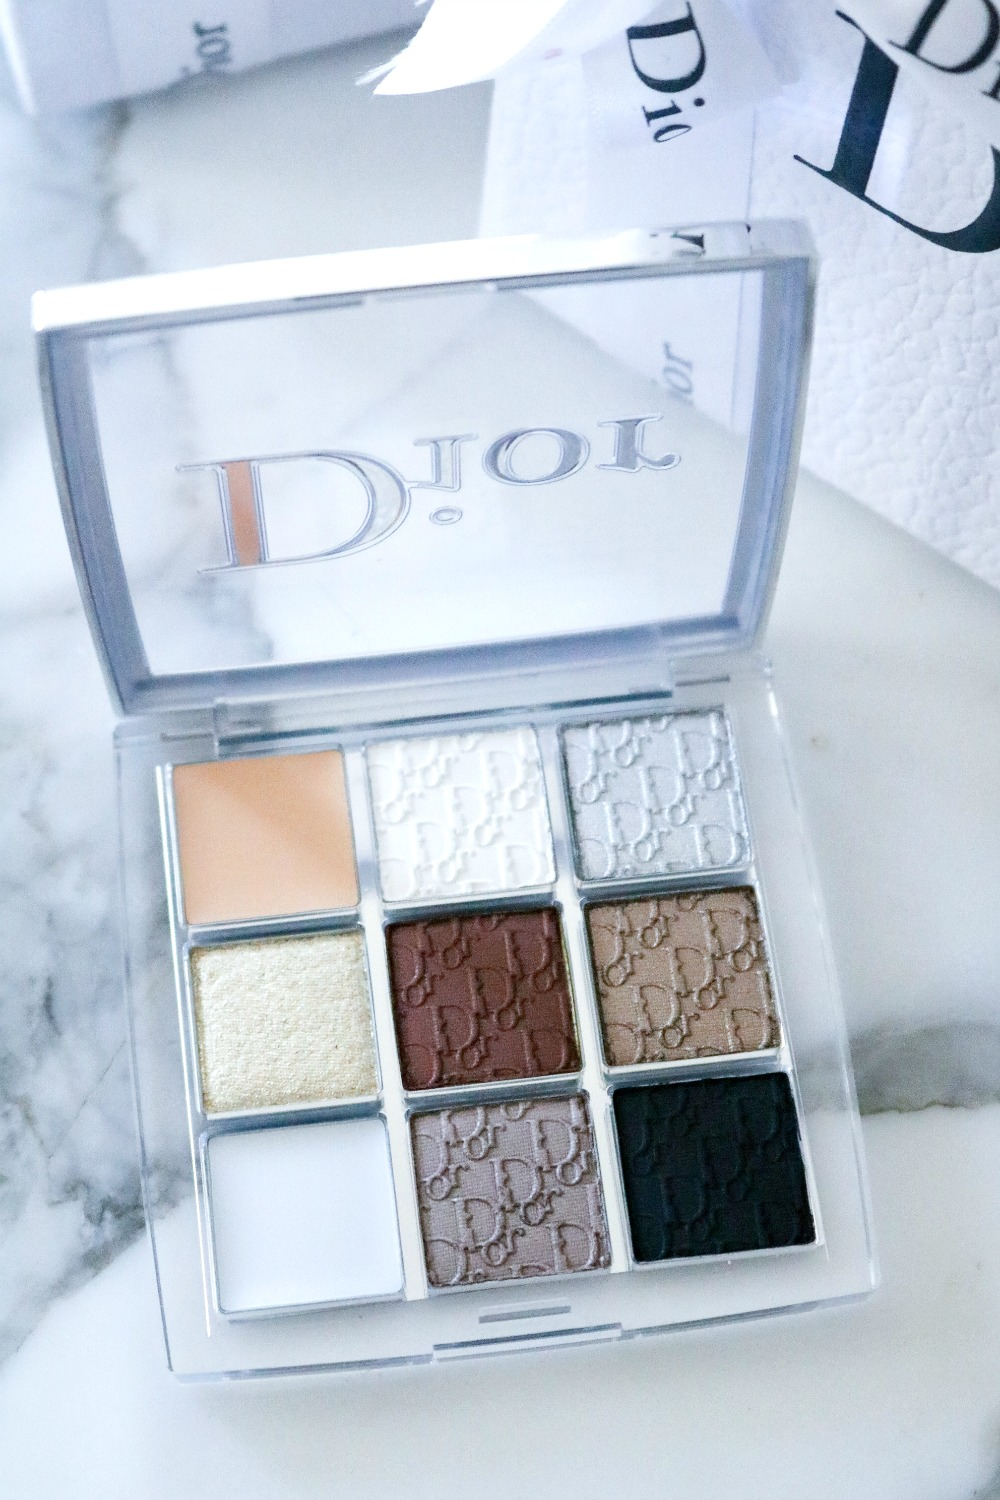 Dior Backstage Custom Eyeshadow Palette I Dreaminlace.com